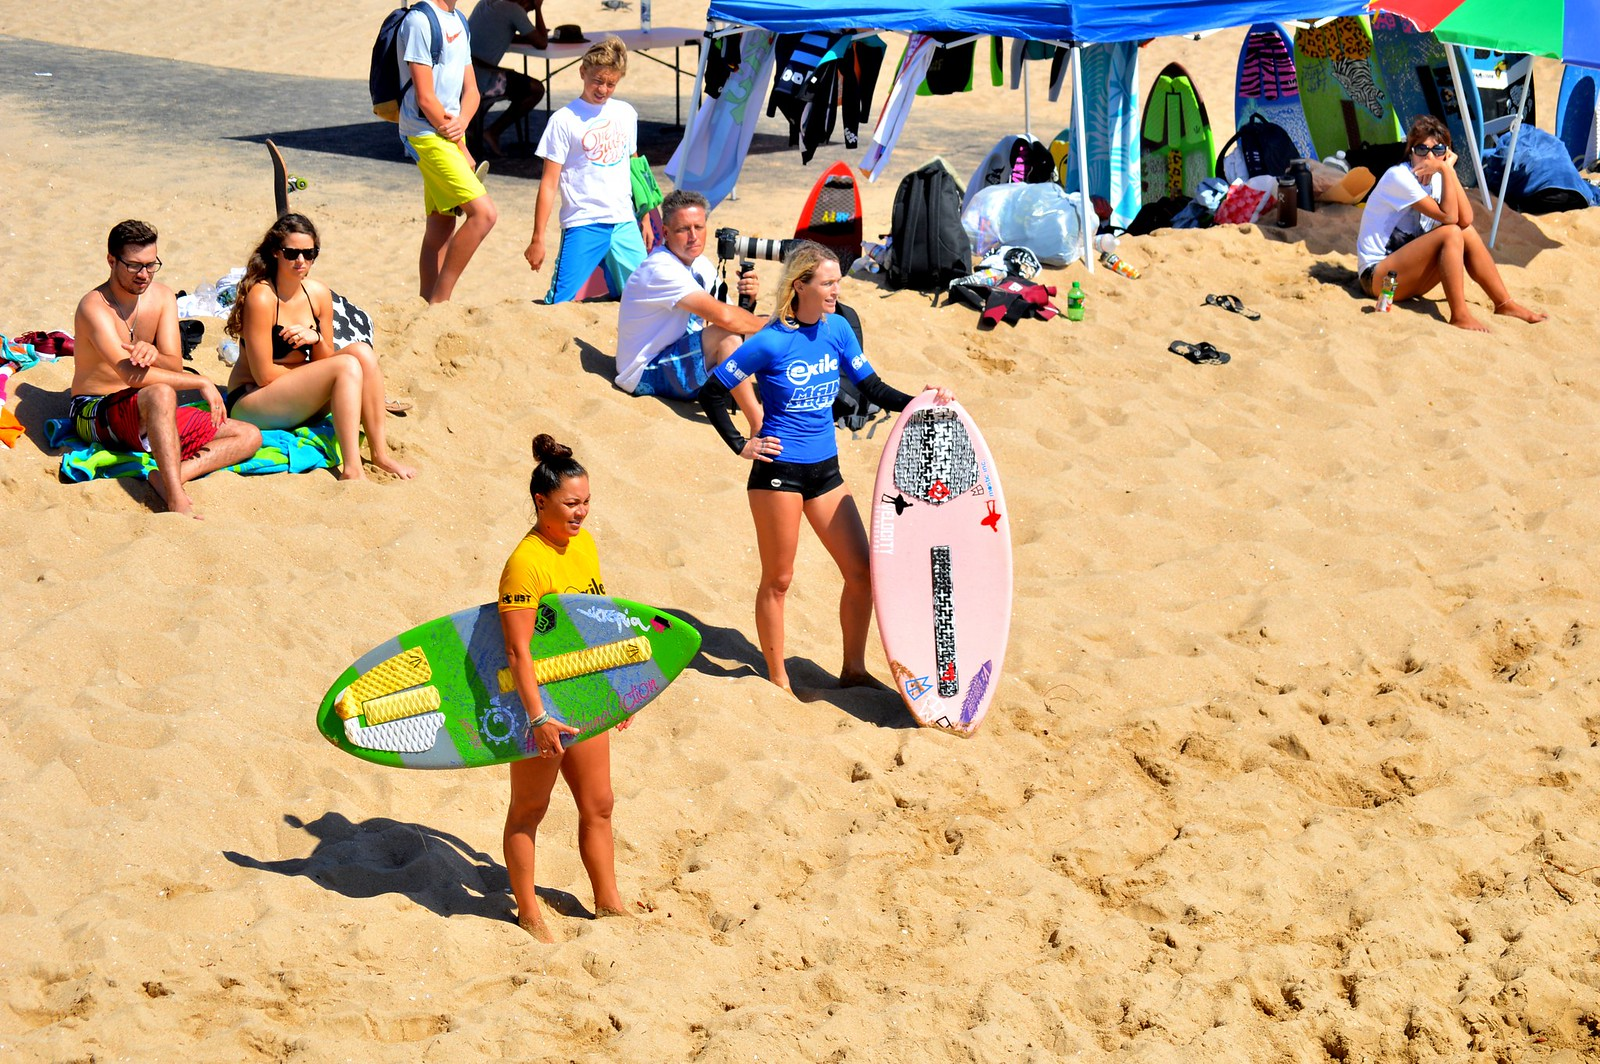 Female surfers participating in a competition at Huntington Beach, California.